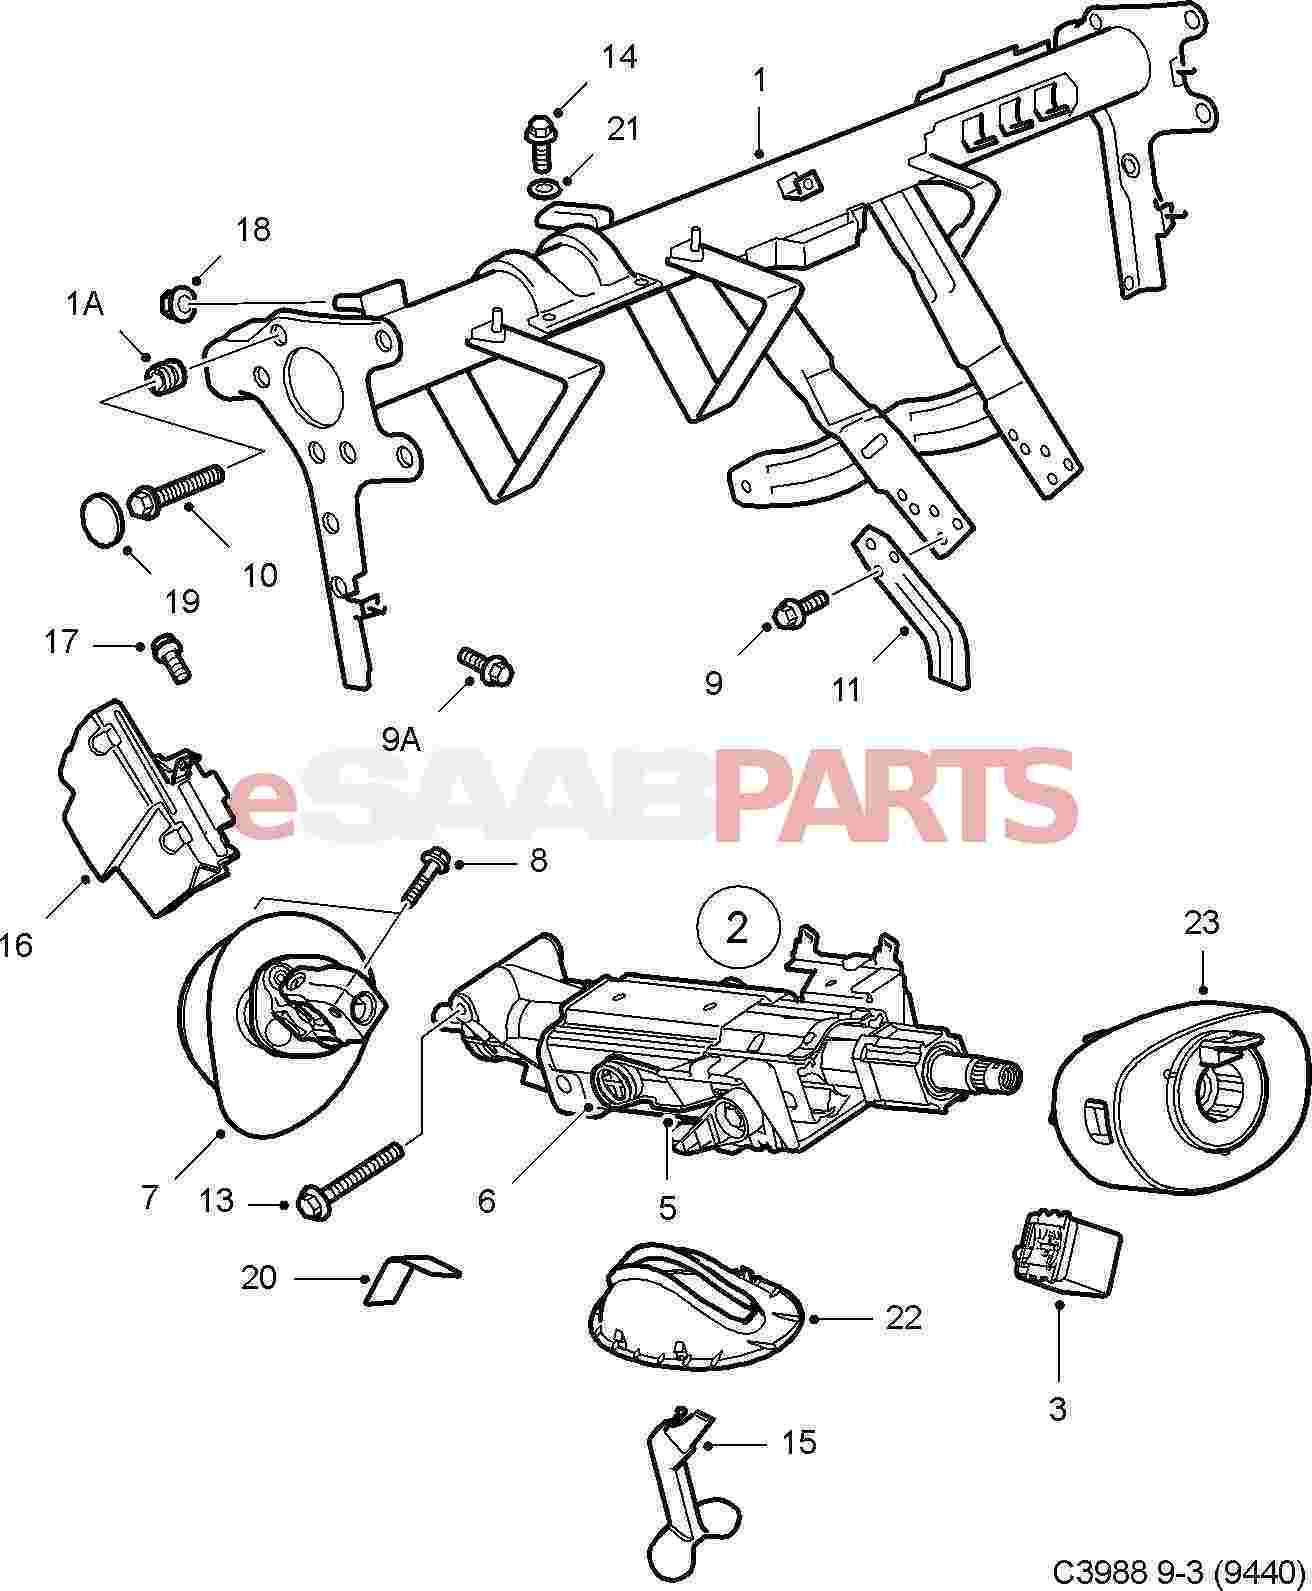 32021812  Saab Cim Column Integration Module - Repair Kit  2005-2011